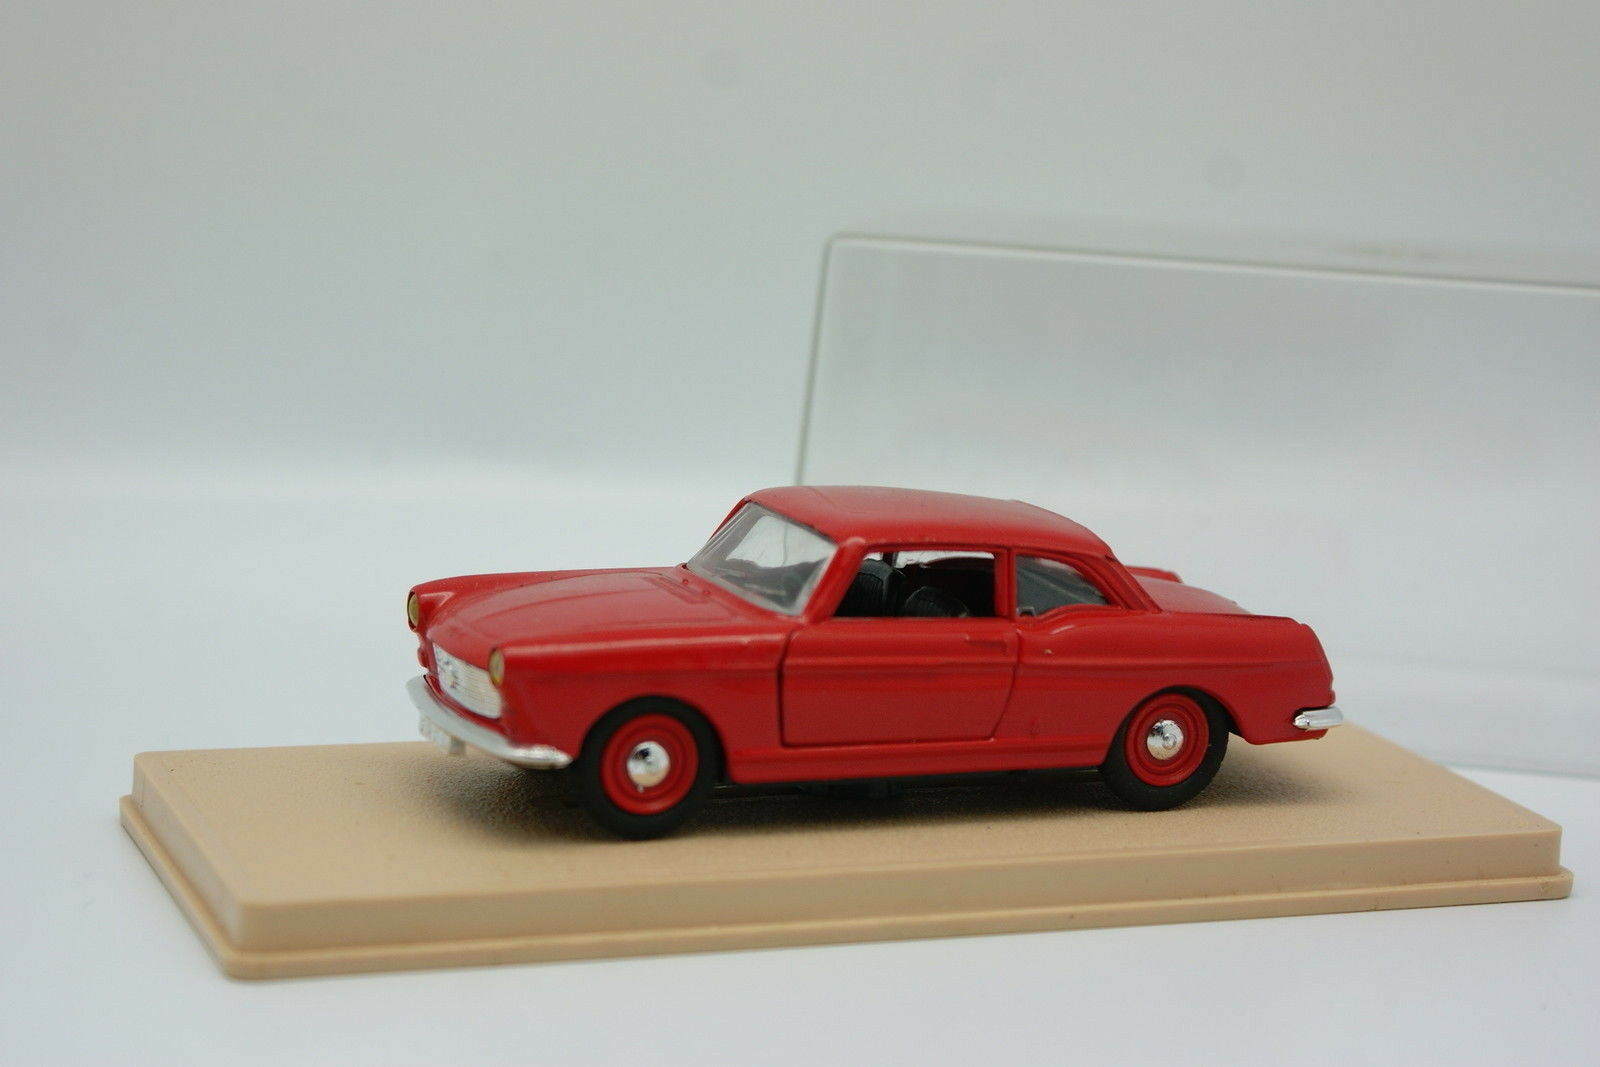 Eligor 1 43 43 43 - Peugeot 404 Coupé red 26f076